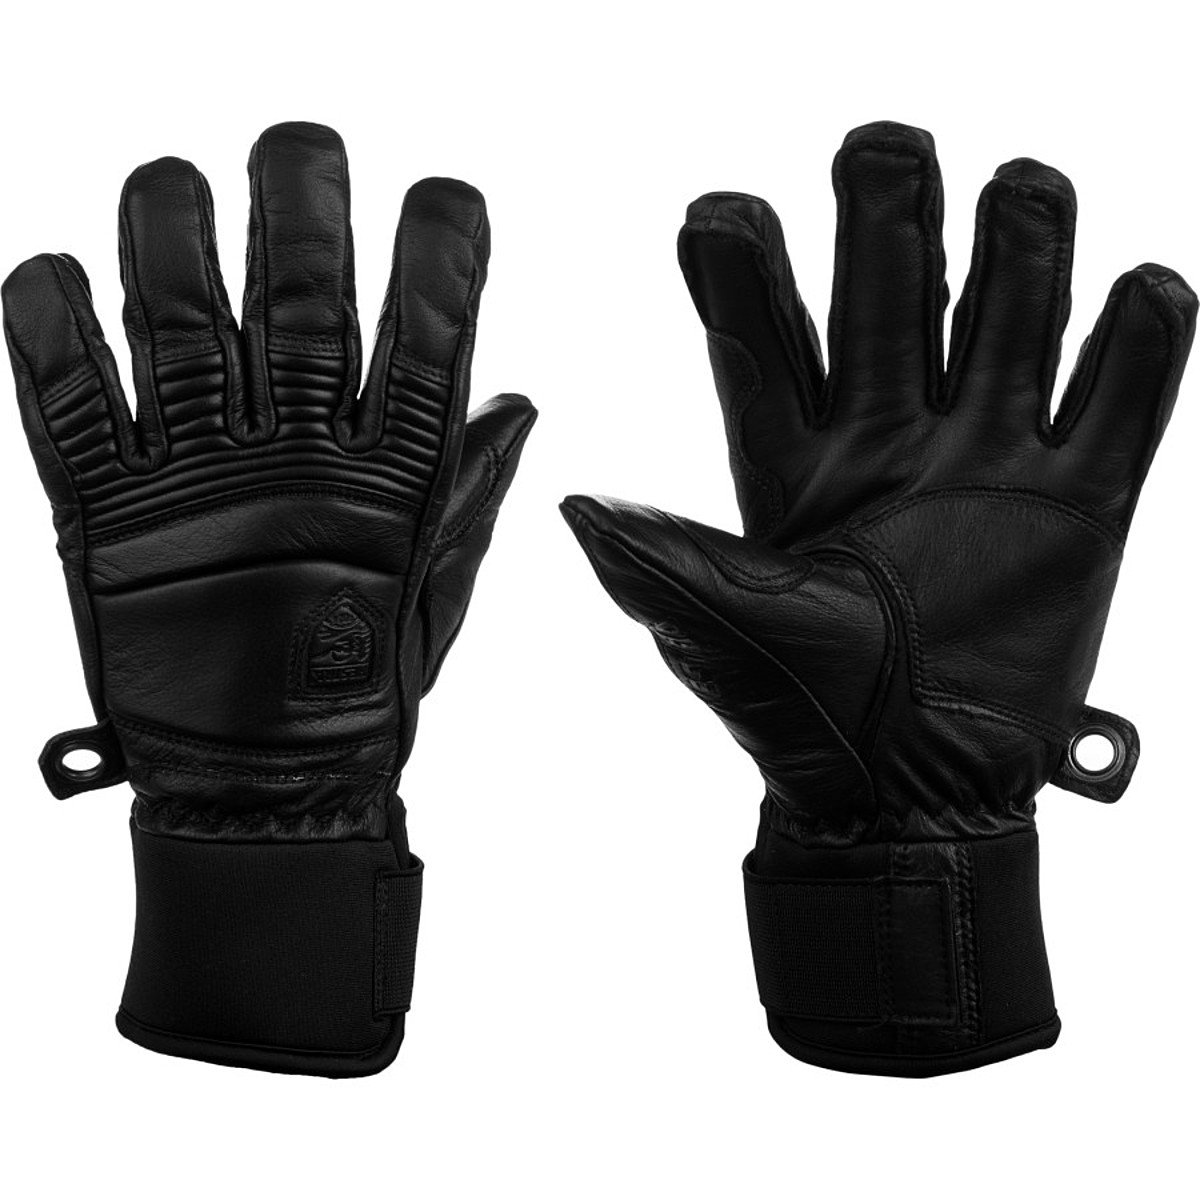 Hestra Fall Line Glove, Black, 9 by Hestra